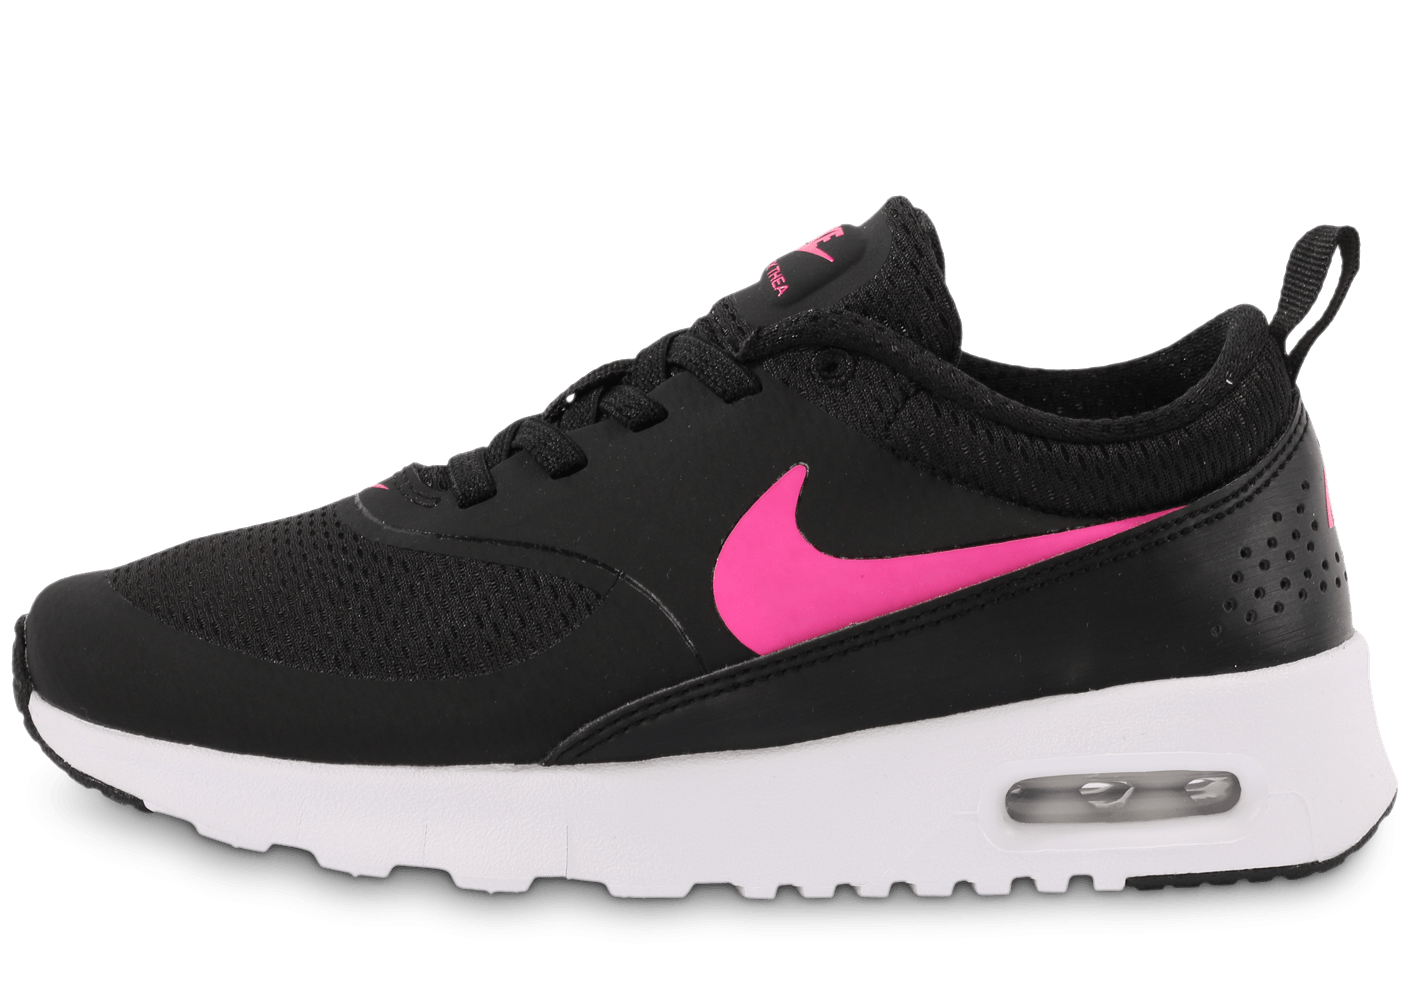 nike air max thea noir rose nike air presto praia. Black Bedroom Furniture Sets. Home Design Ideas